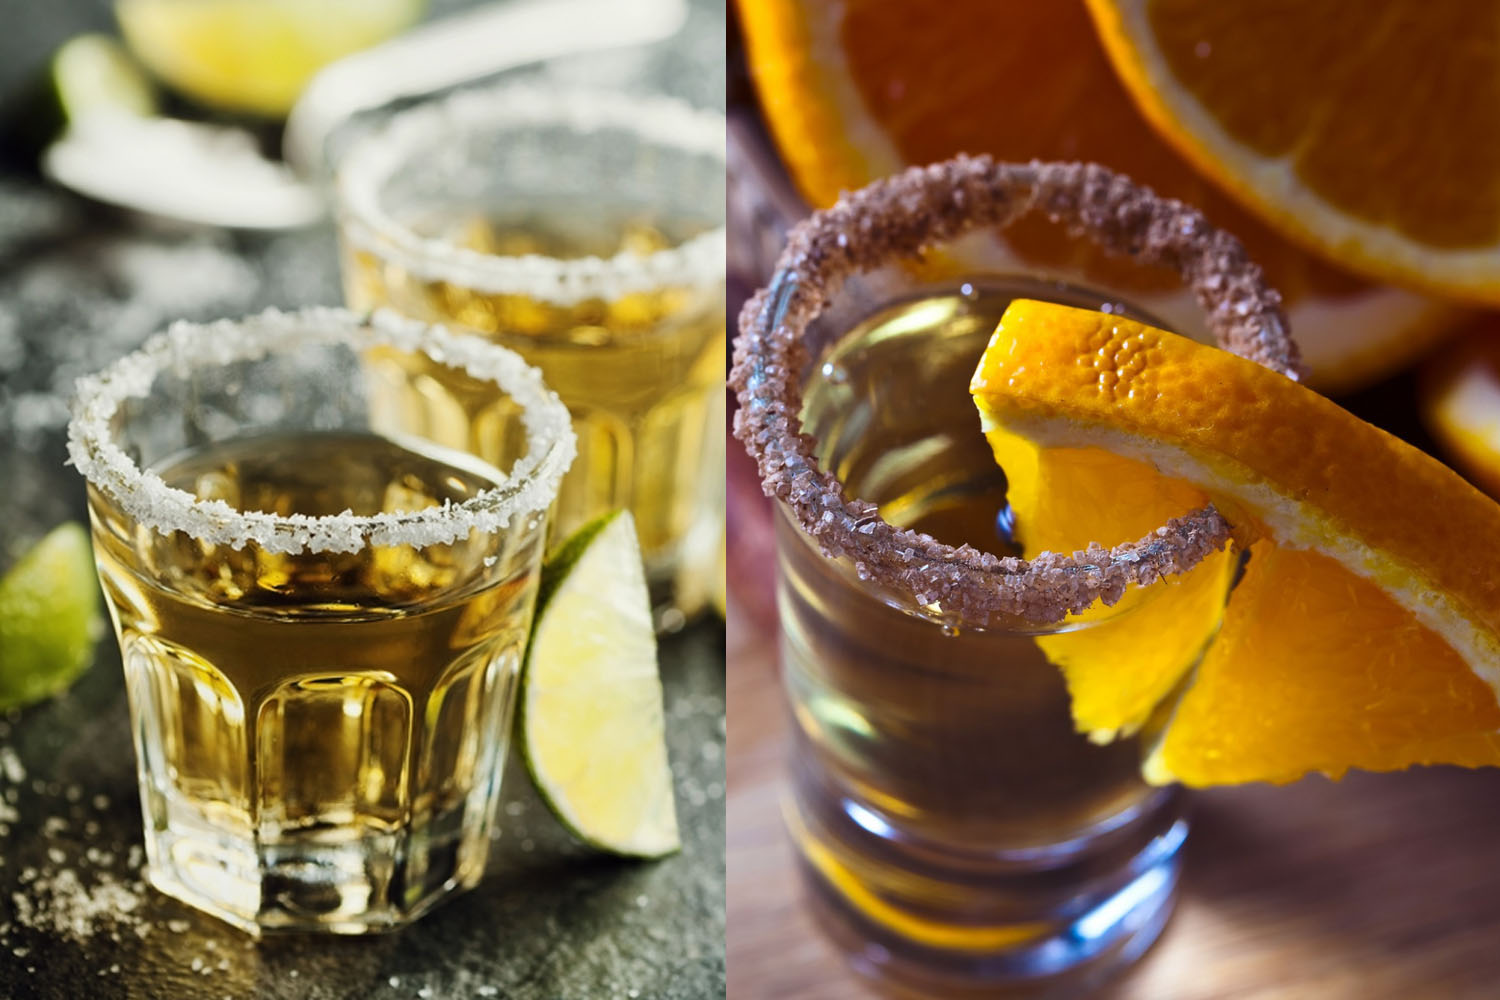 Global Mezcal Market Report (2019-2025) – Market Size, Share, Price, Trend And Forecast – Market Expert24 photo